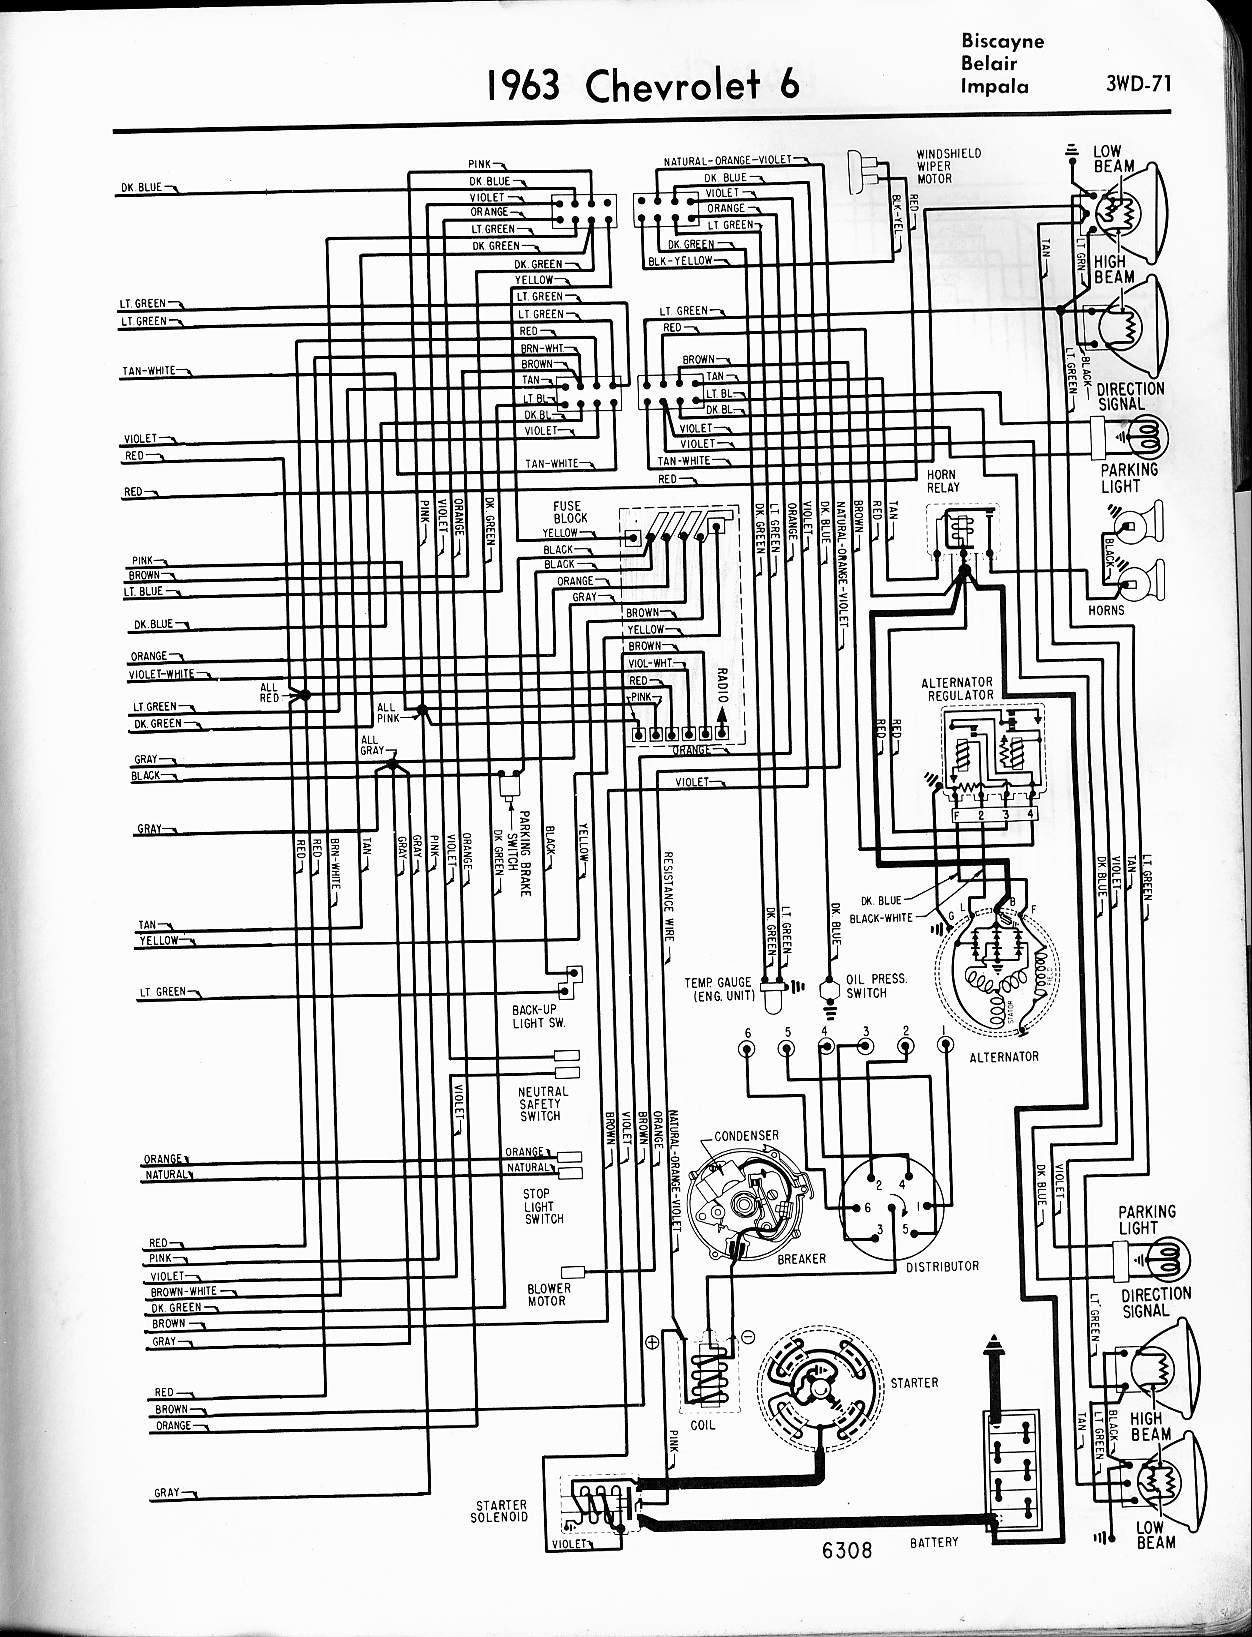 1965 Impala Wiring Diagram Simple 84 Ford Thunderbird 57 65 Chevy Diagrams 1984 C10